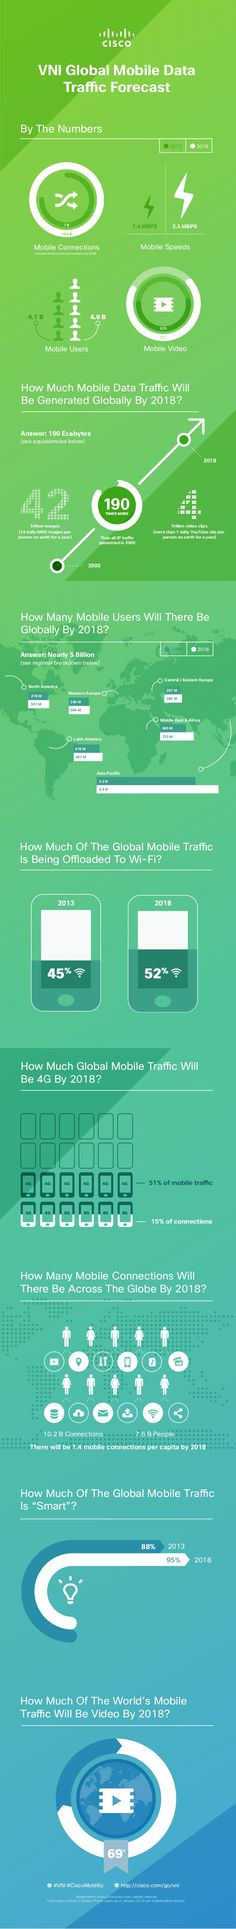 Cisco Visual Networking Index Global Mobile Data Traffic Forecast Infographic by Cisco Service Provider via slideshare Global Mobile, Data Charts, Geek Girls, Big Data, Facts, Infographics, Marketing, Market Trends